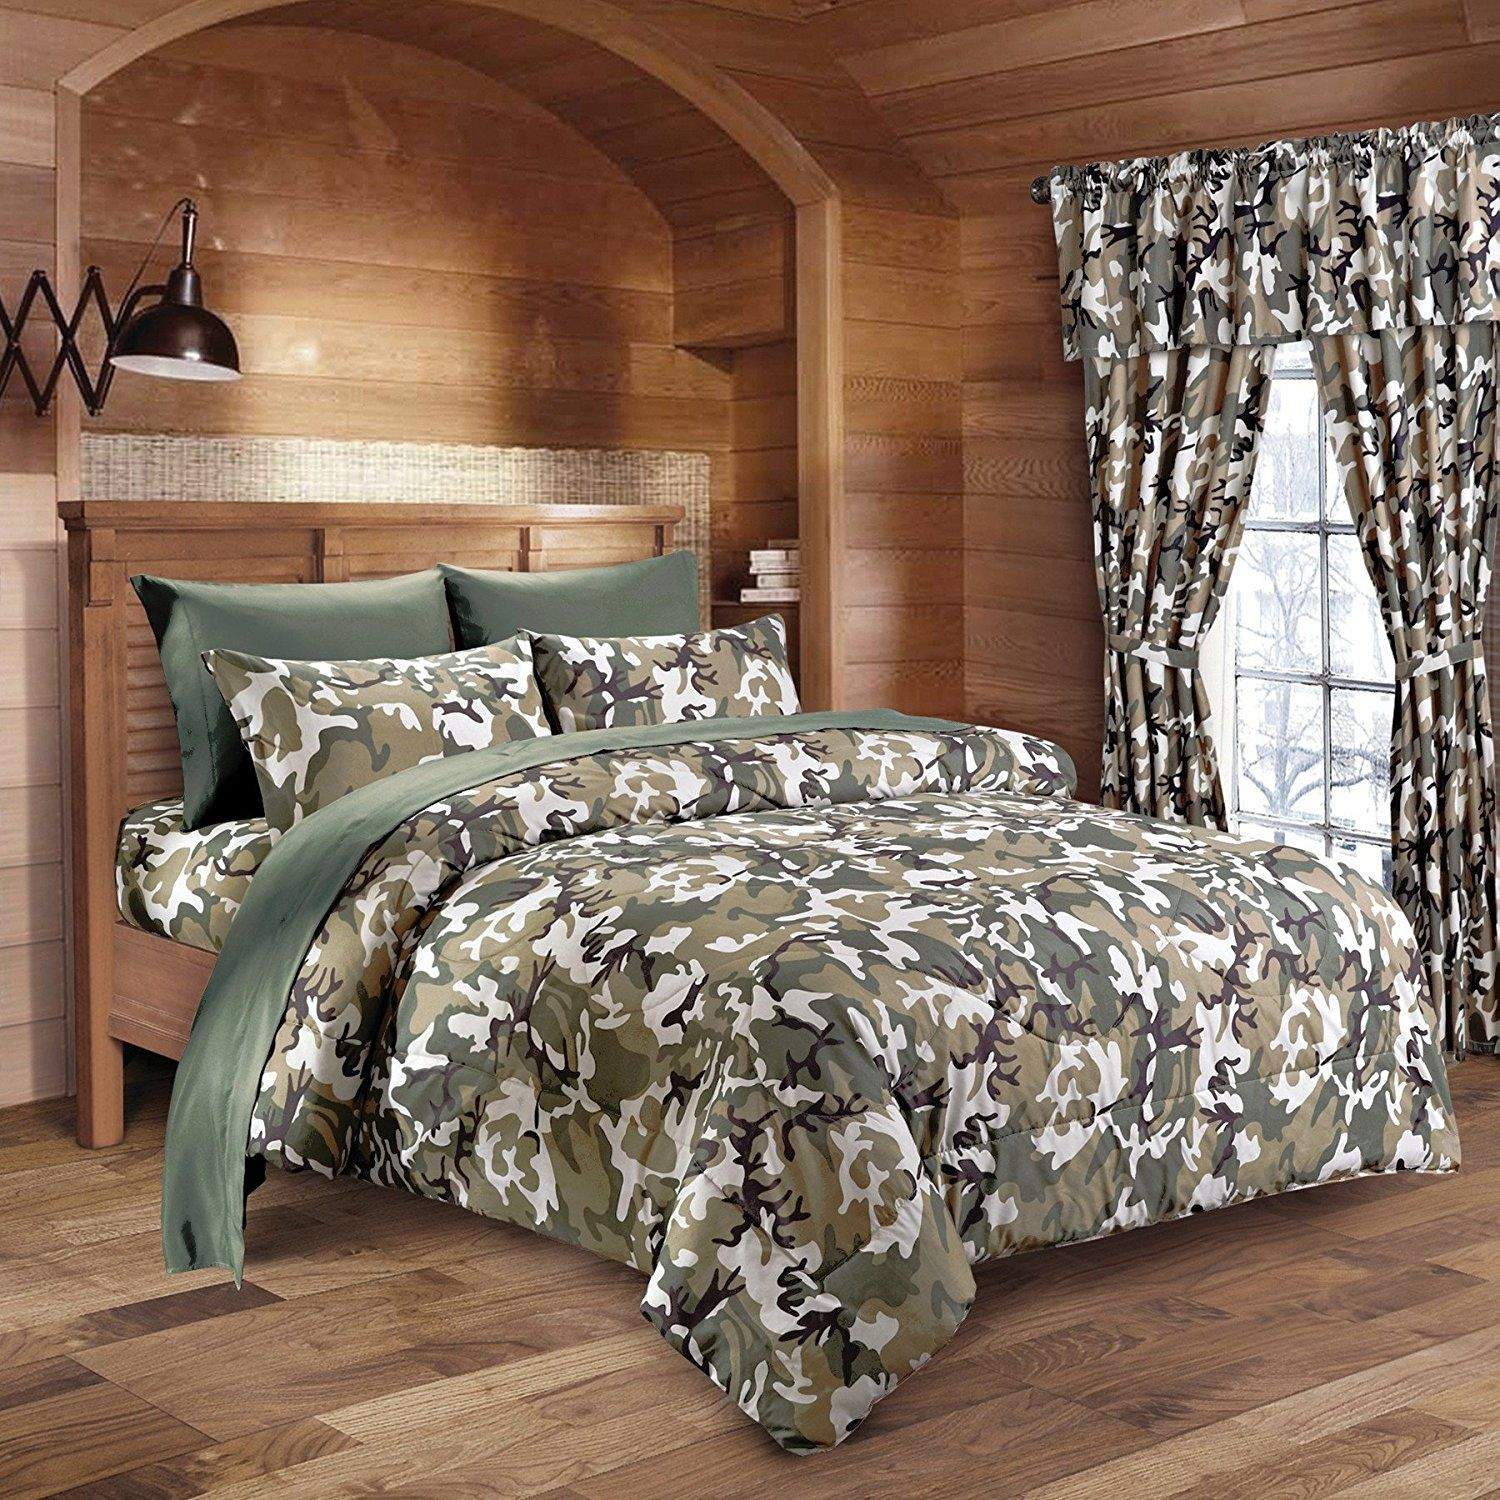 Marvelous Army Camo Comforter, Sheet, U0026 Pillowcase Bed In A Bag Set